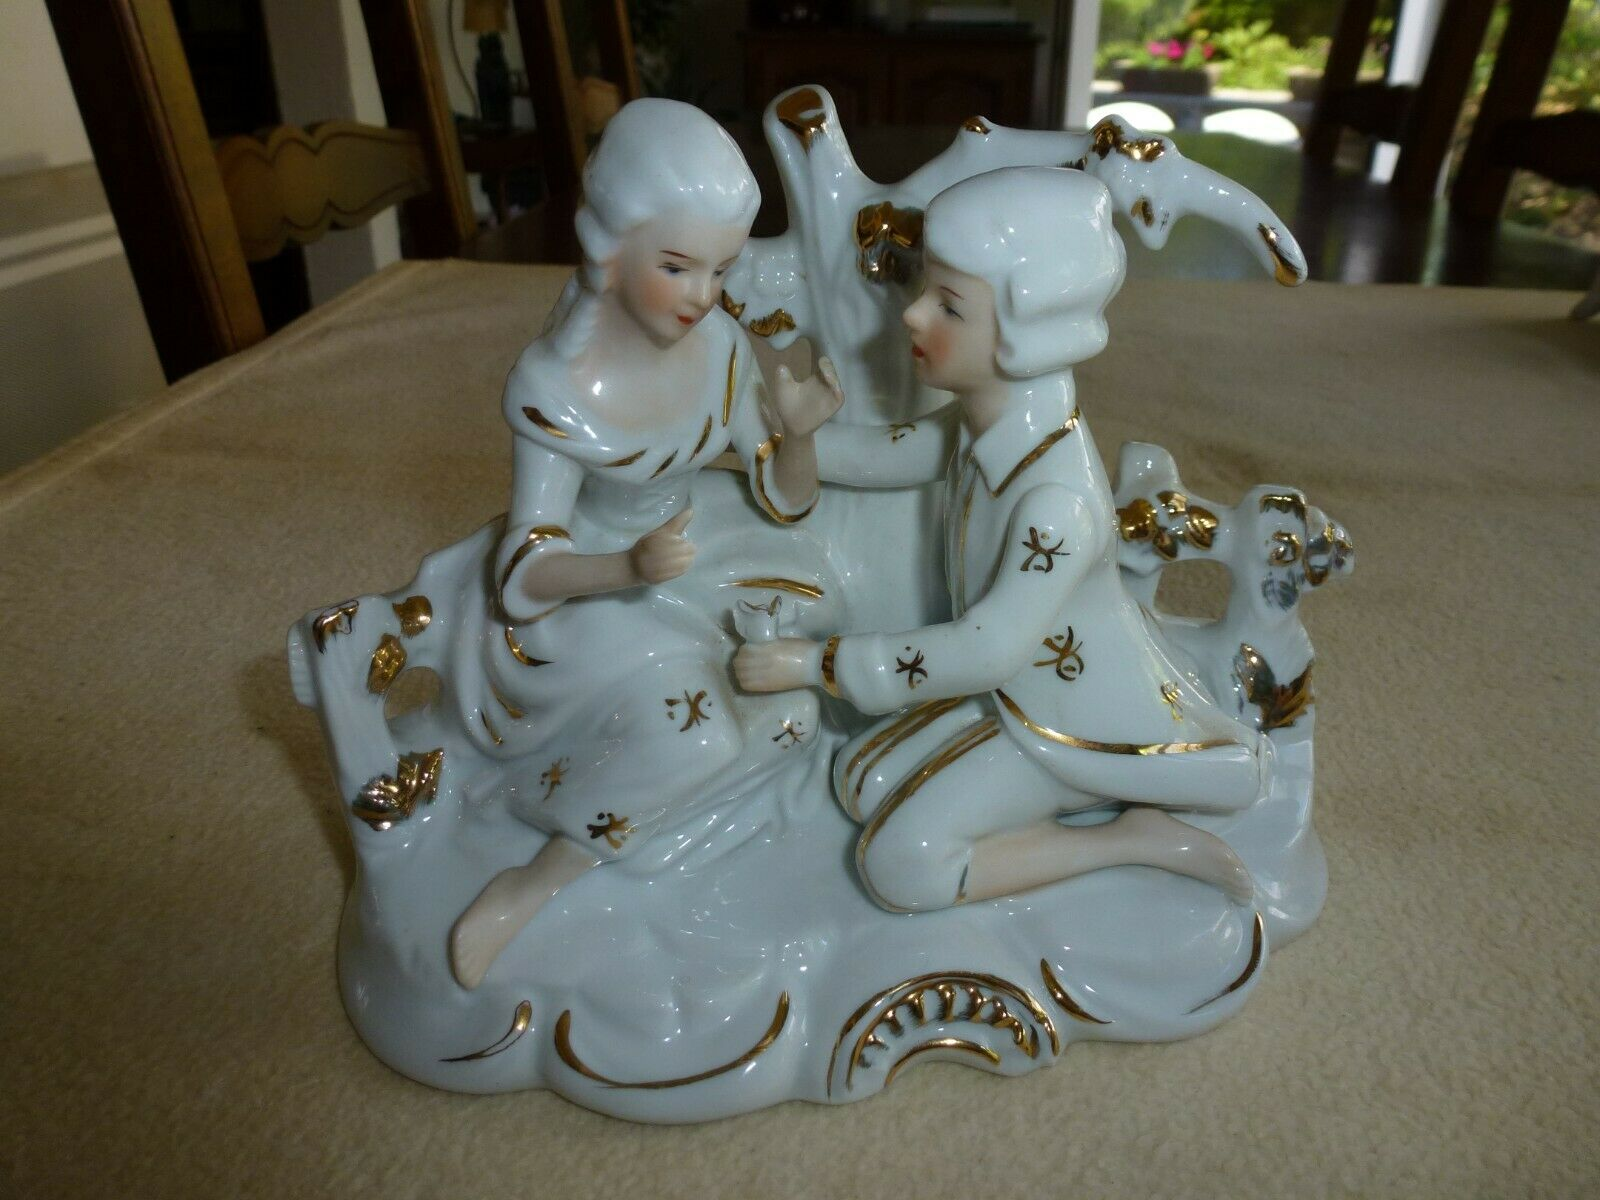 Superbe figurine en porcelaine couple declarant sa flamme